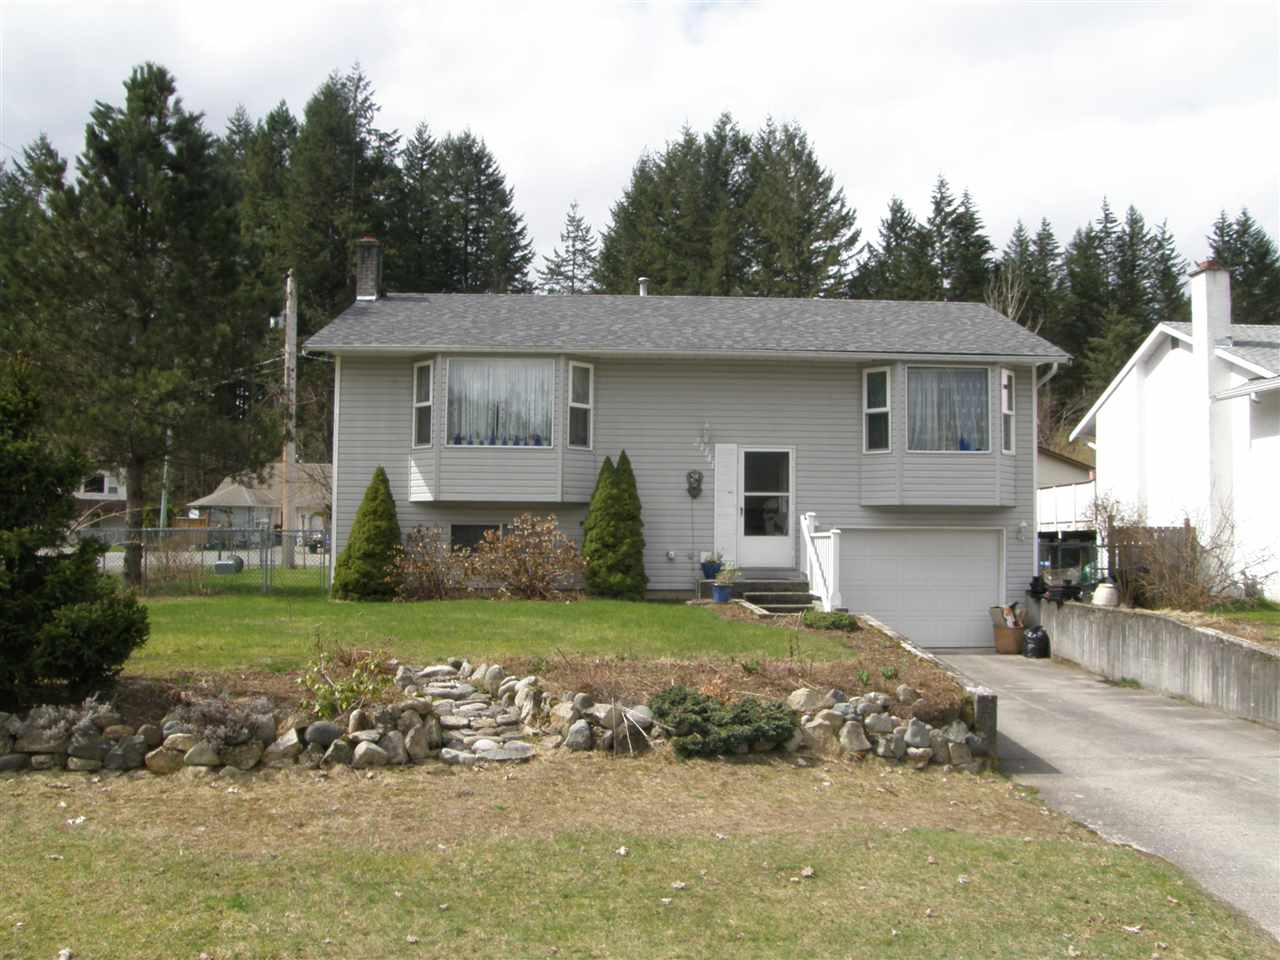 Main Photo: 21141 LAKEVIEW Crescent in Hope: Hope Kawkawa Lake House for sale : MLS® # R2154729